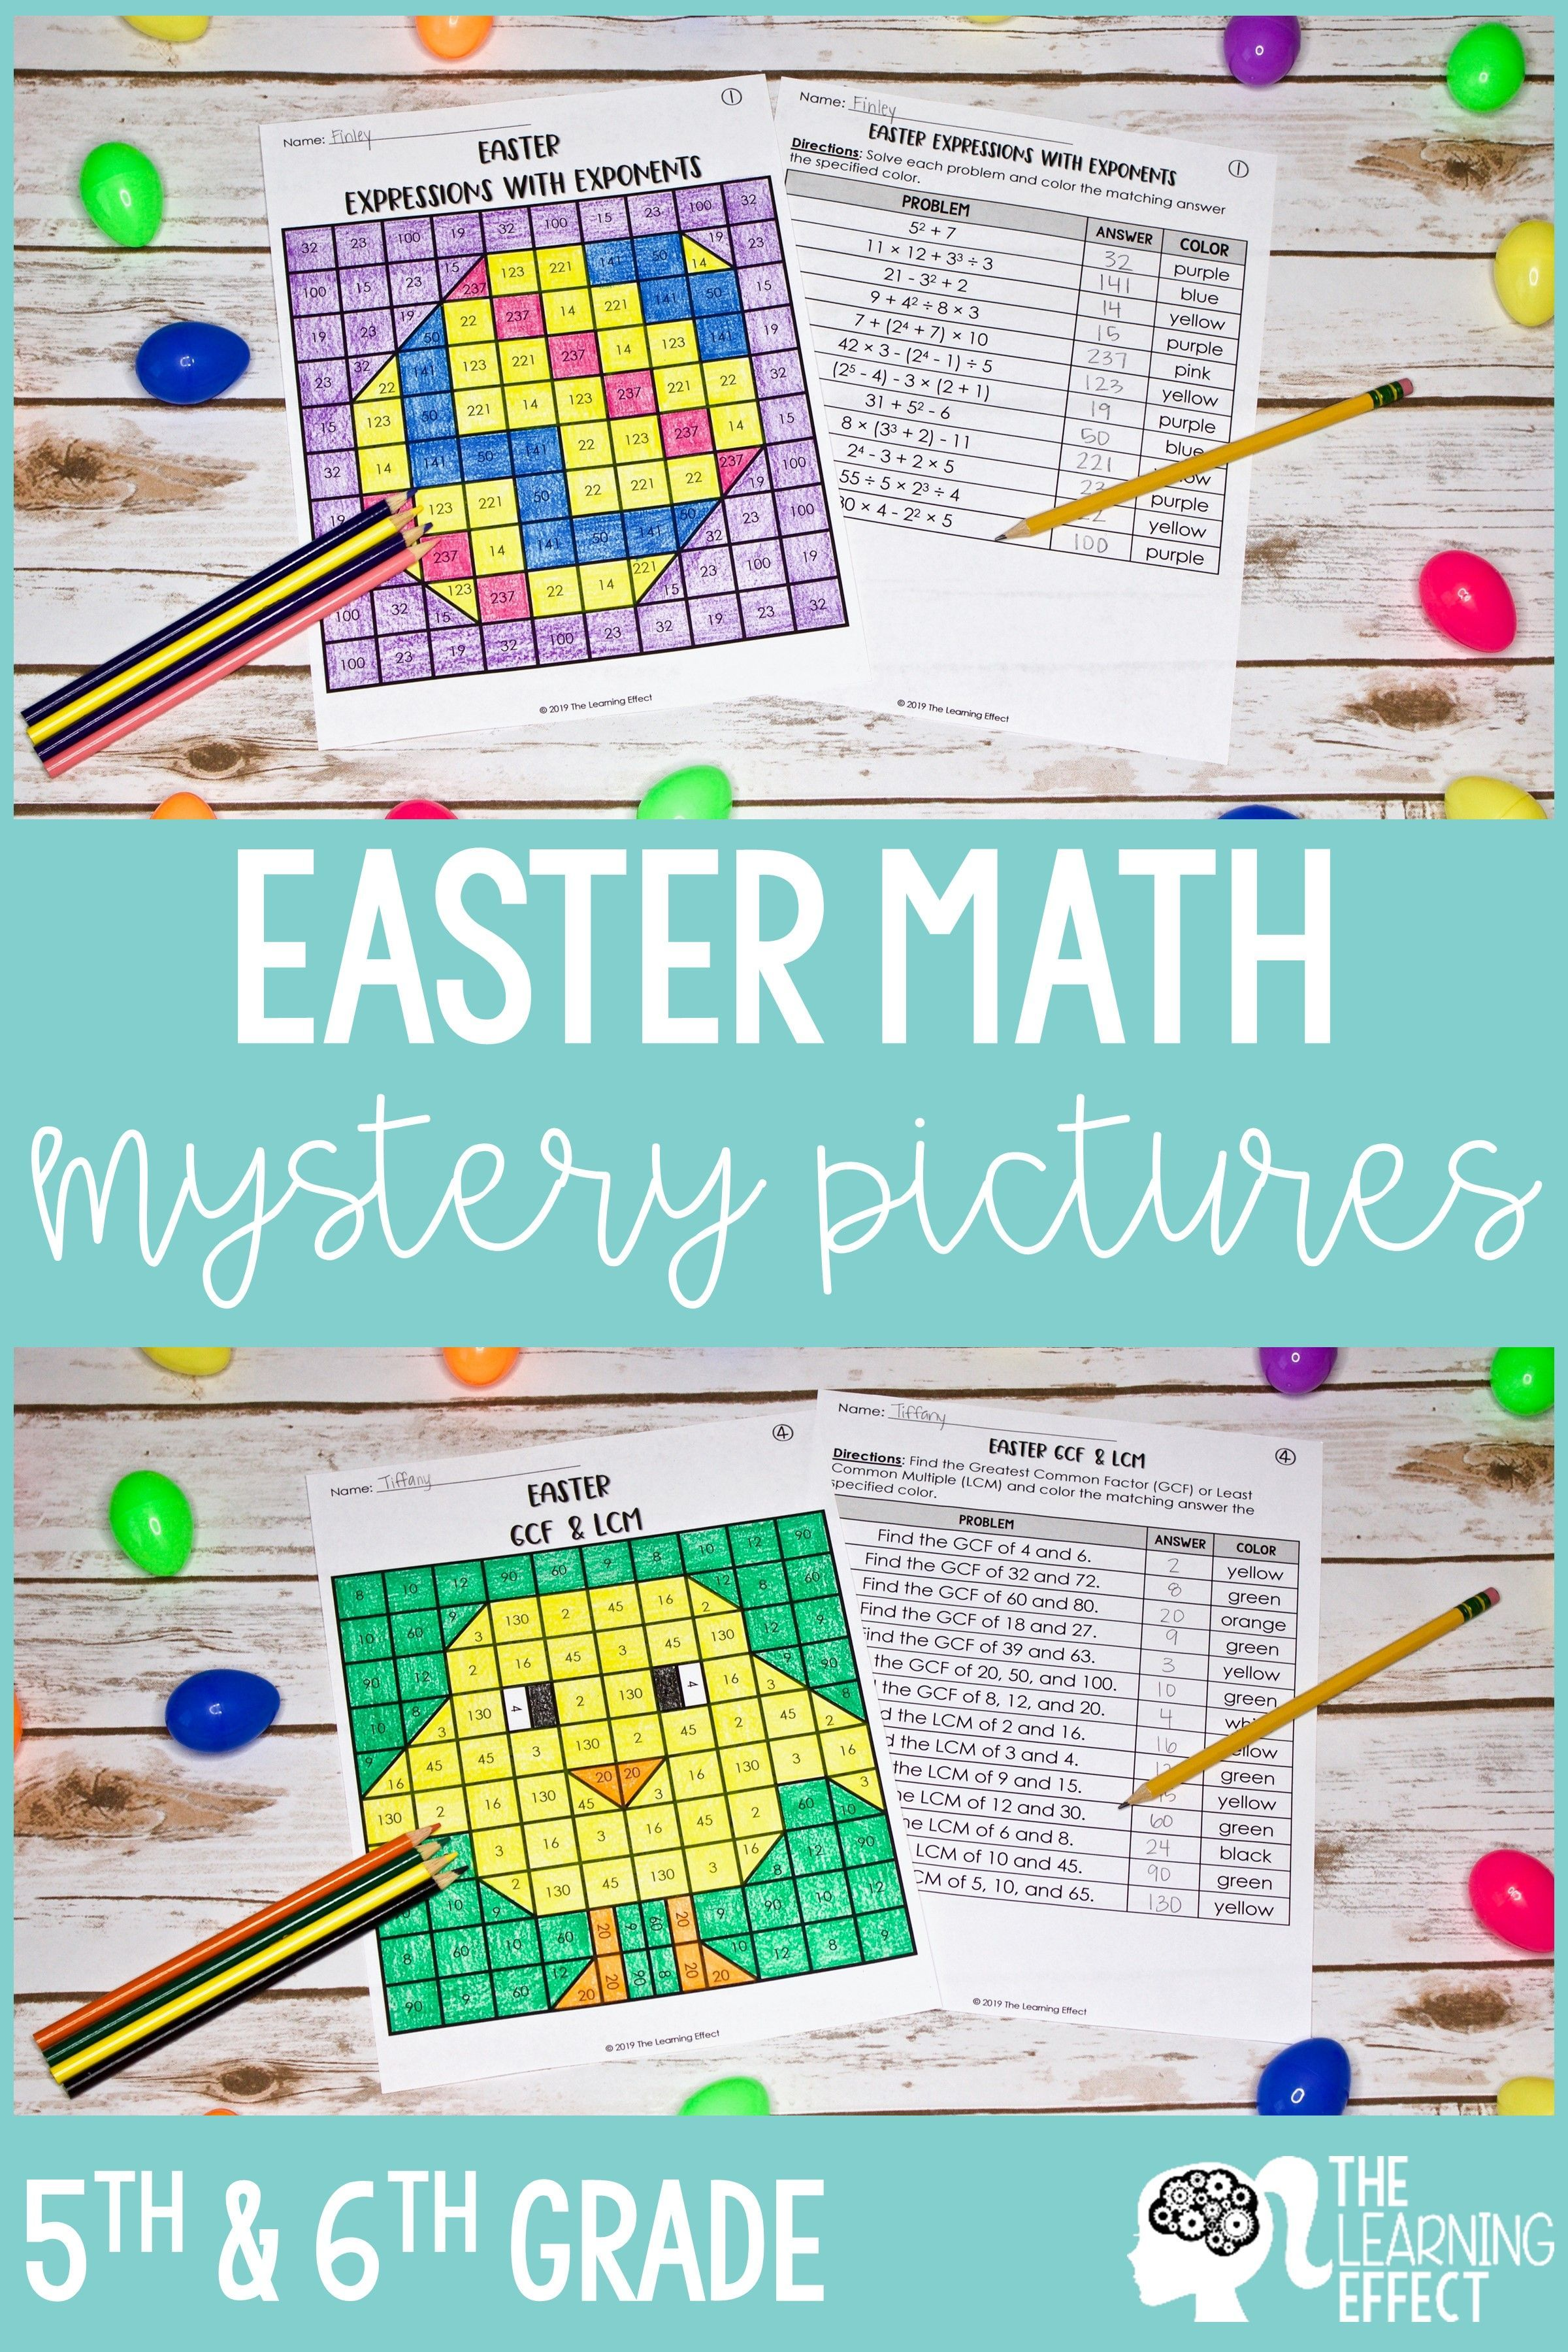 Easter Math Mystery Pictures Expressions, Powers of Ten